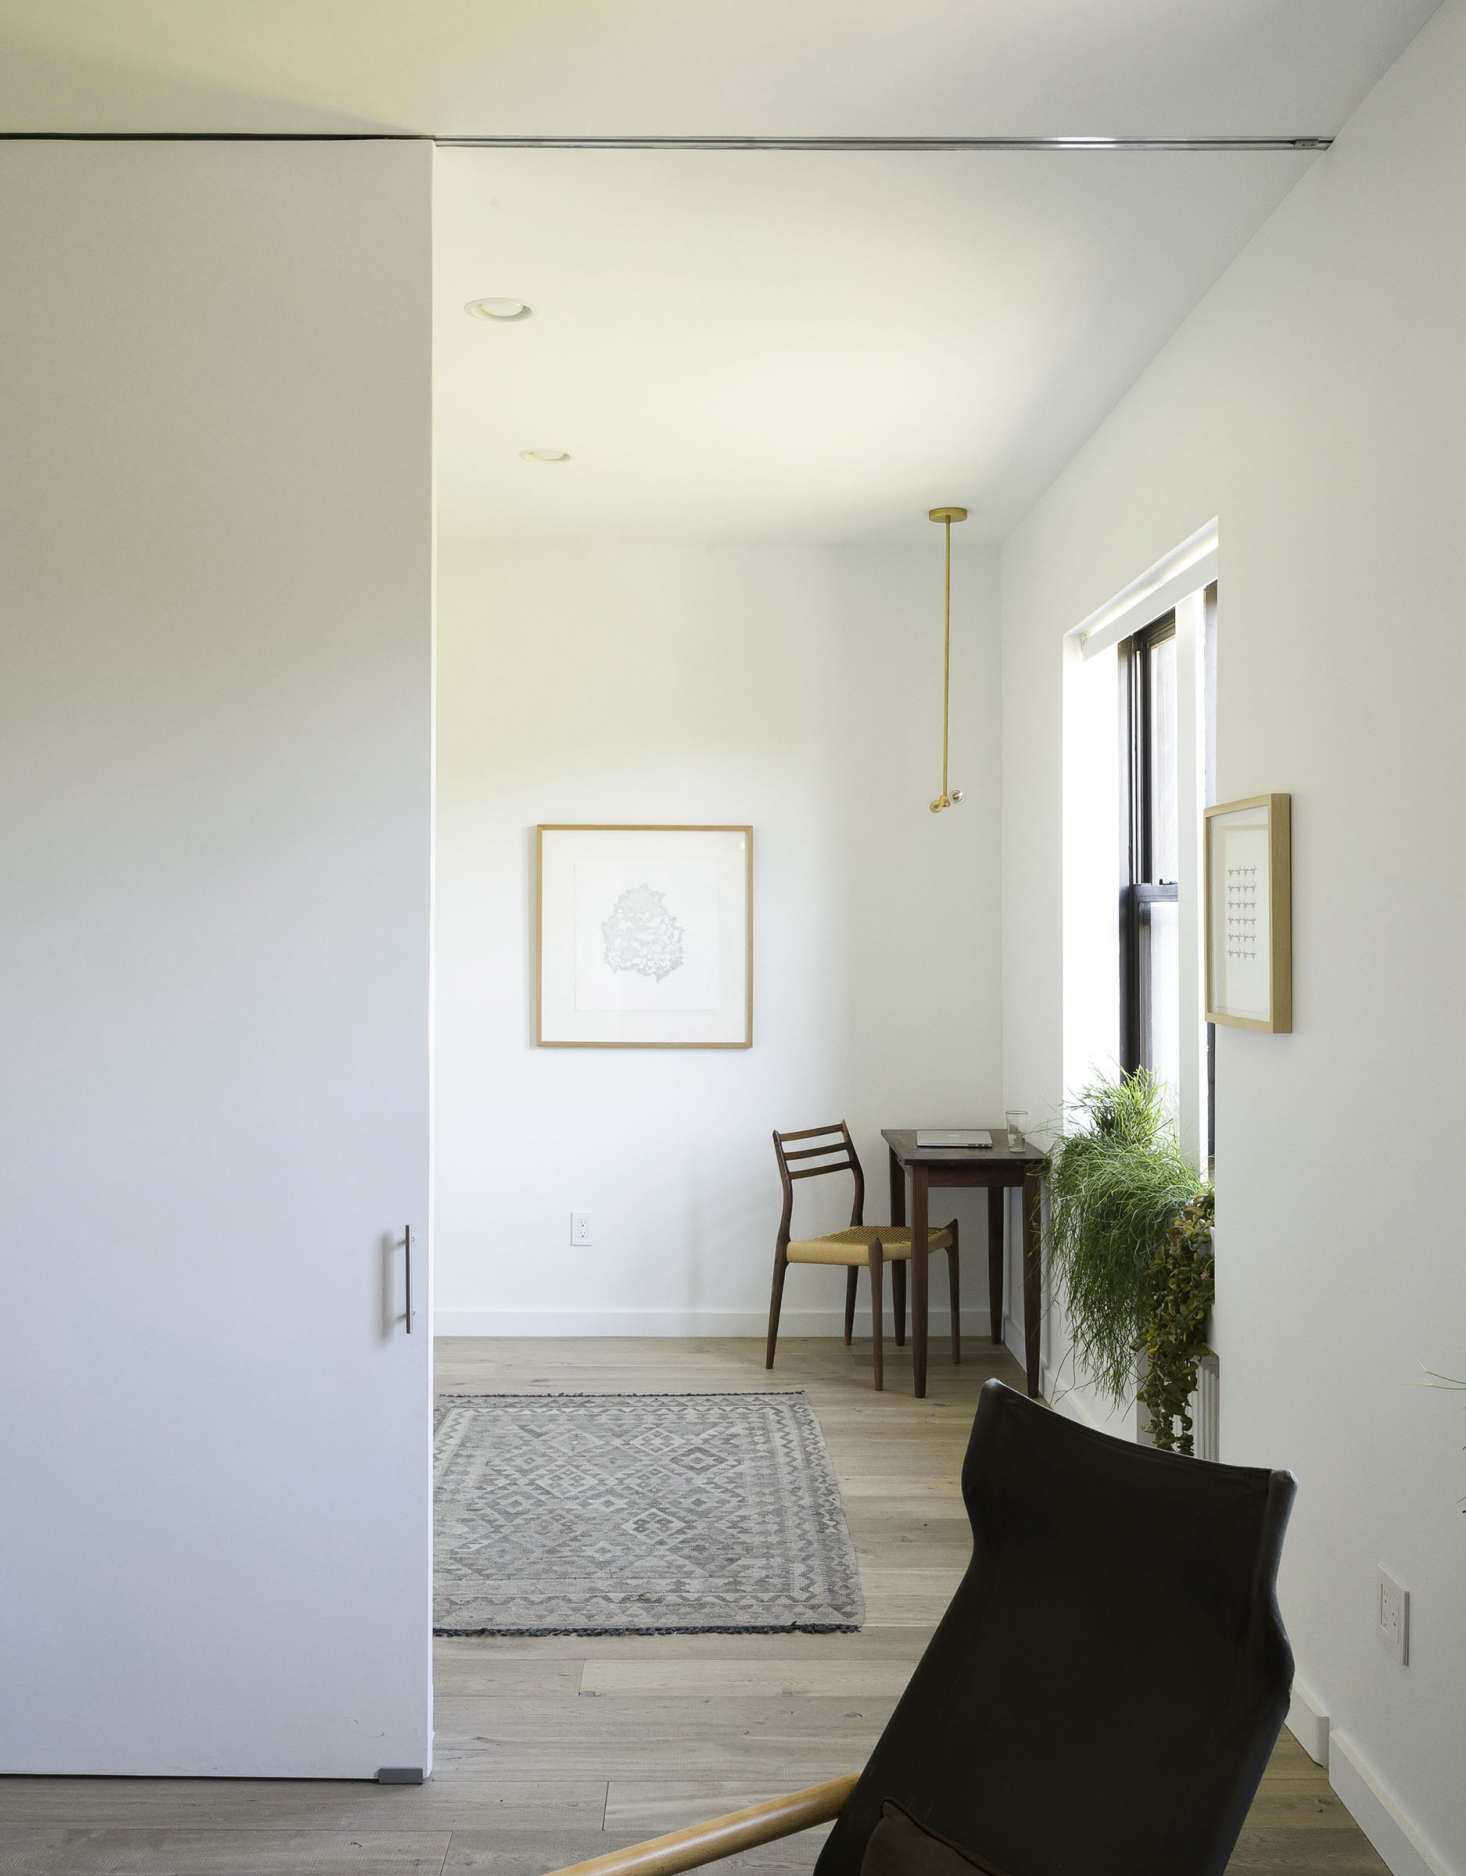 Expert Advice 5 Things To Know About Recessed Lighting From Architect Oliver Freundlich Remodelista,Mehndi Designs Easy And Simple Back Side